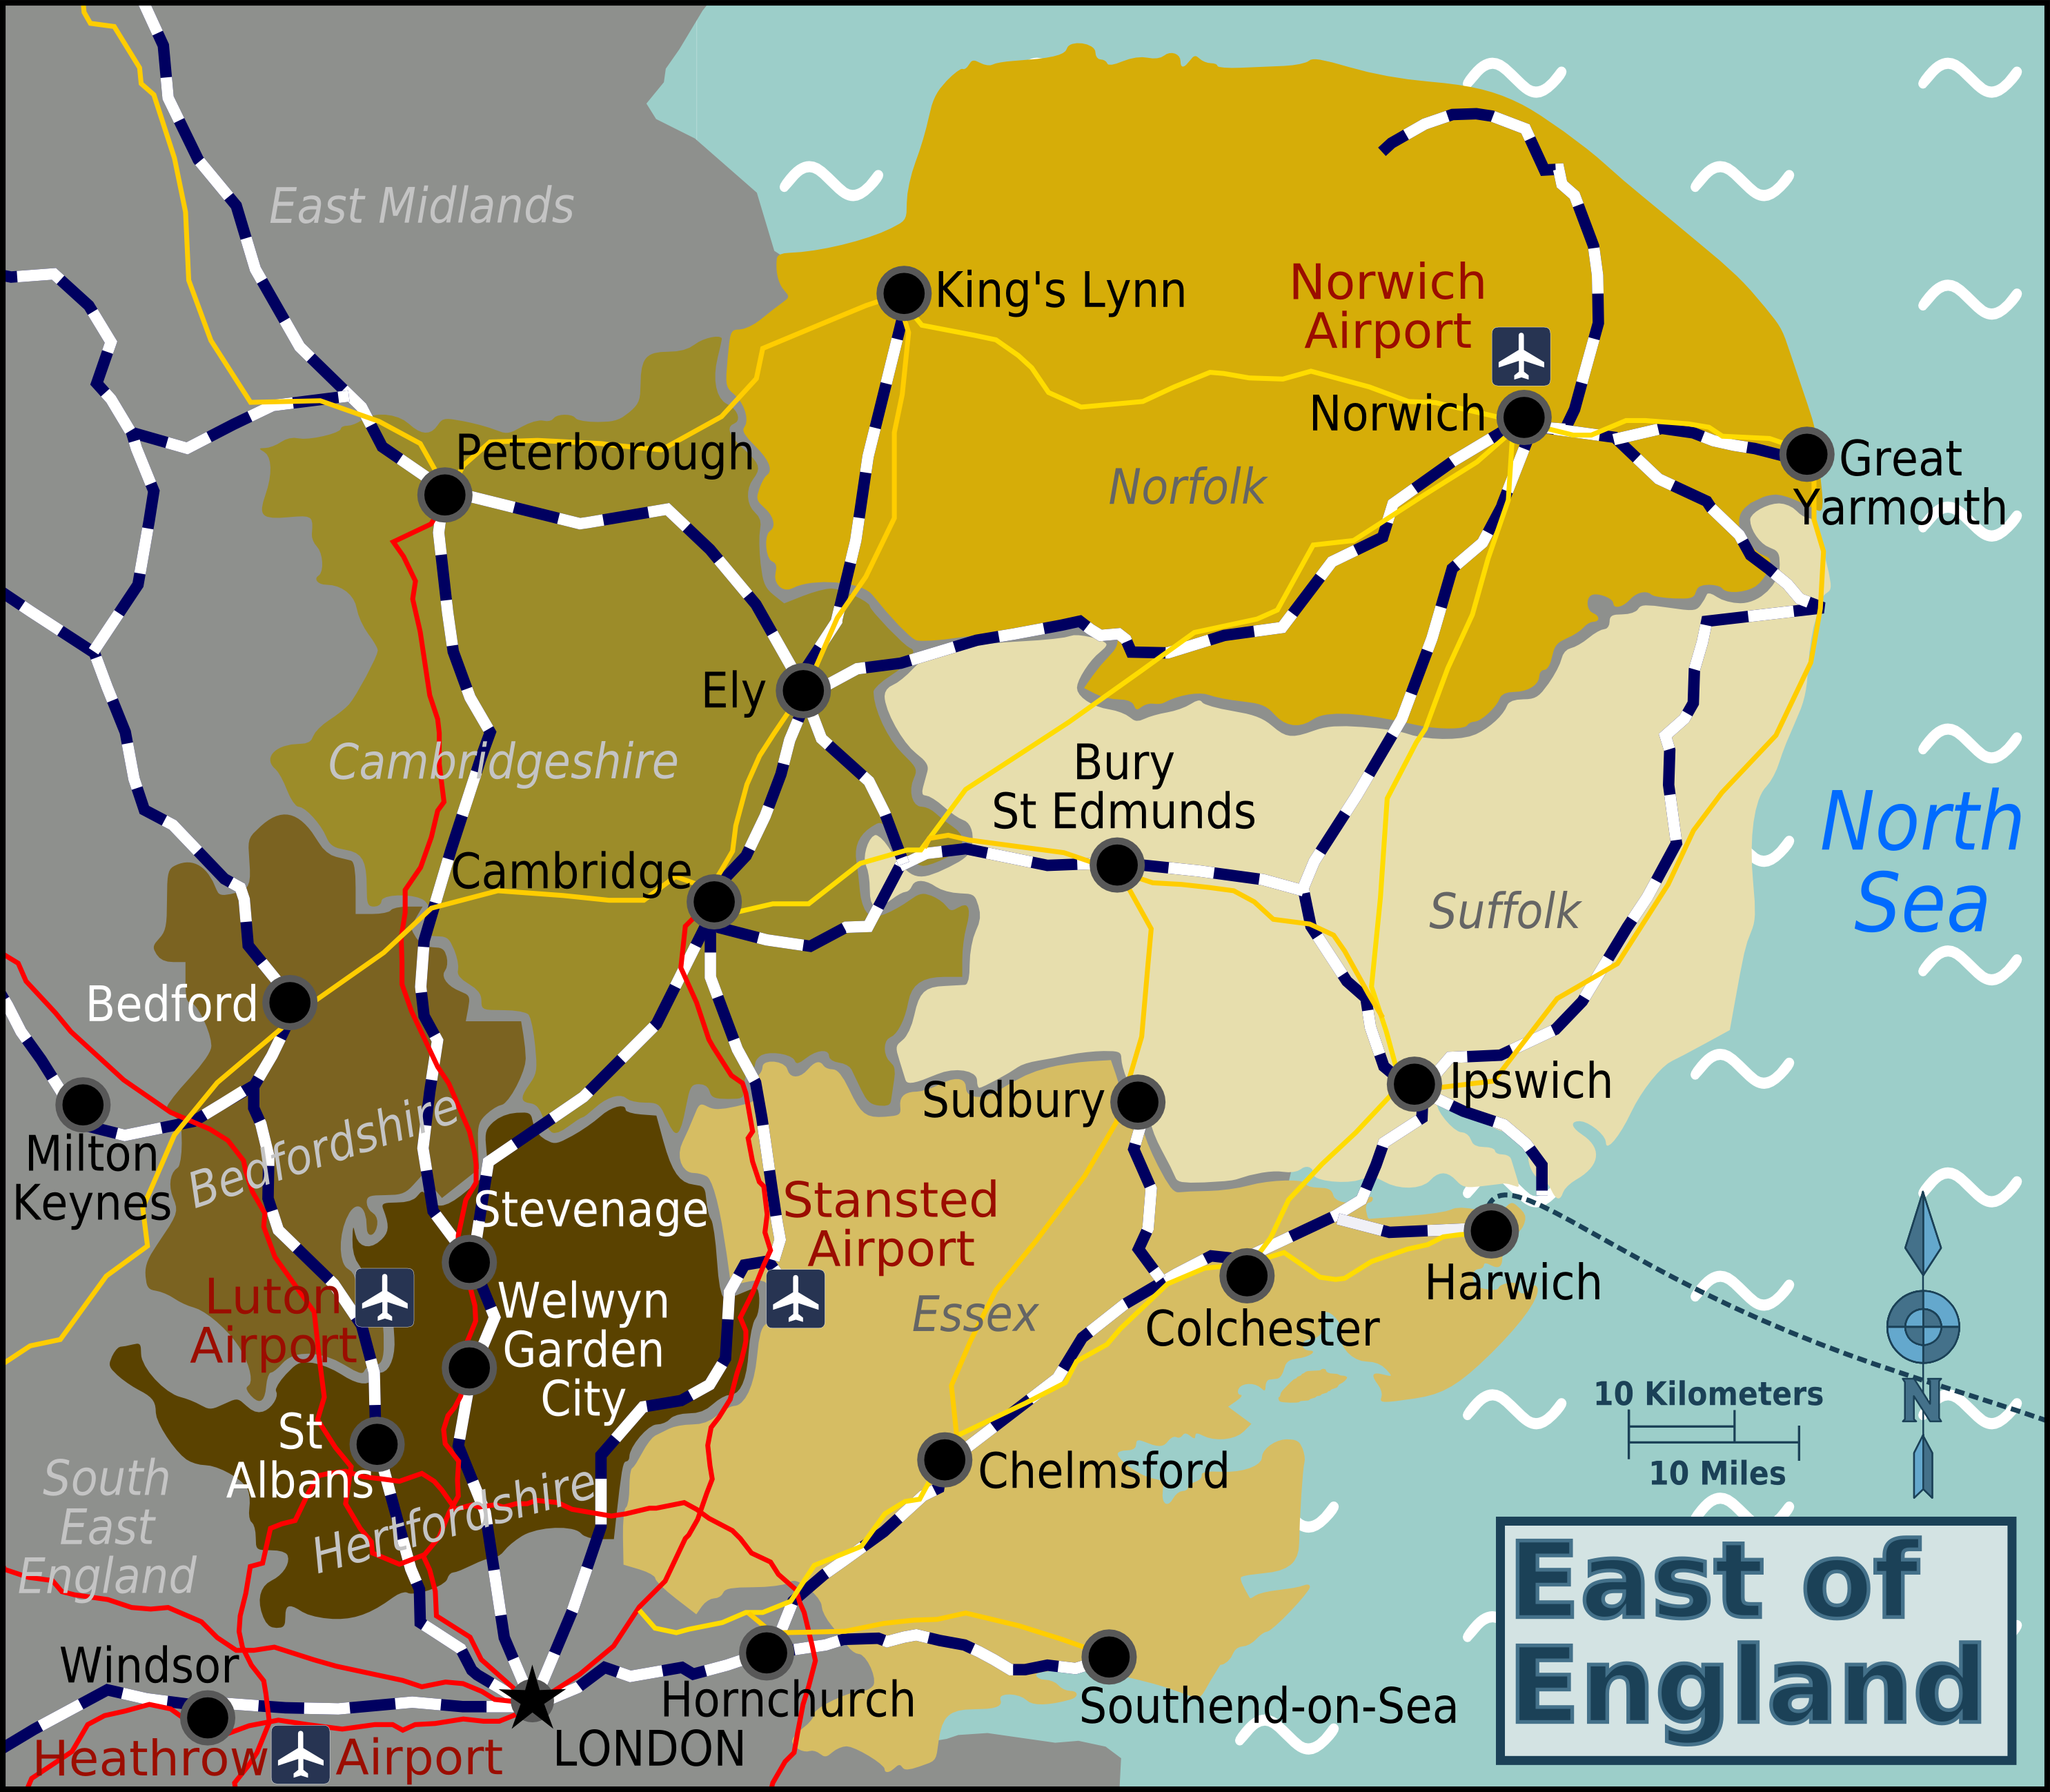 East_of_England_map.png?profile=RESIZE_400x